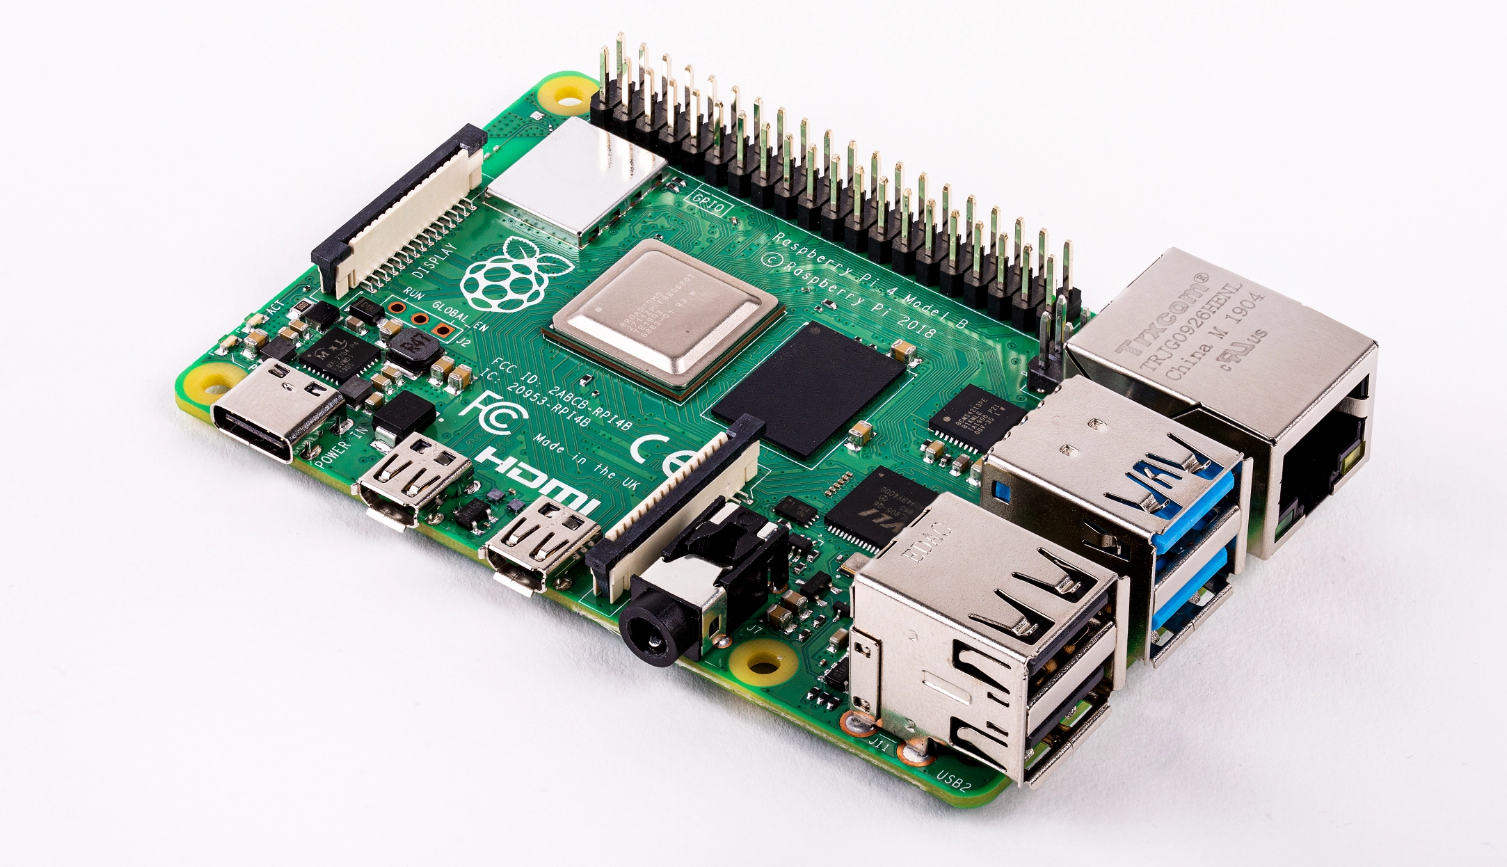 Raspberry Pi 4 offers true Gigabit Ethernet and 4K video for $35